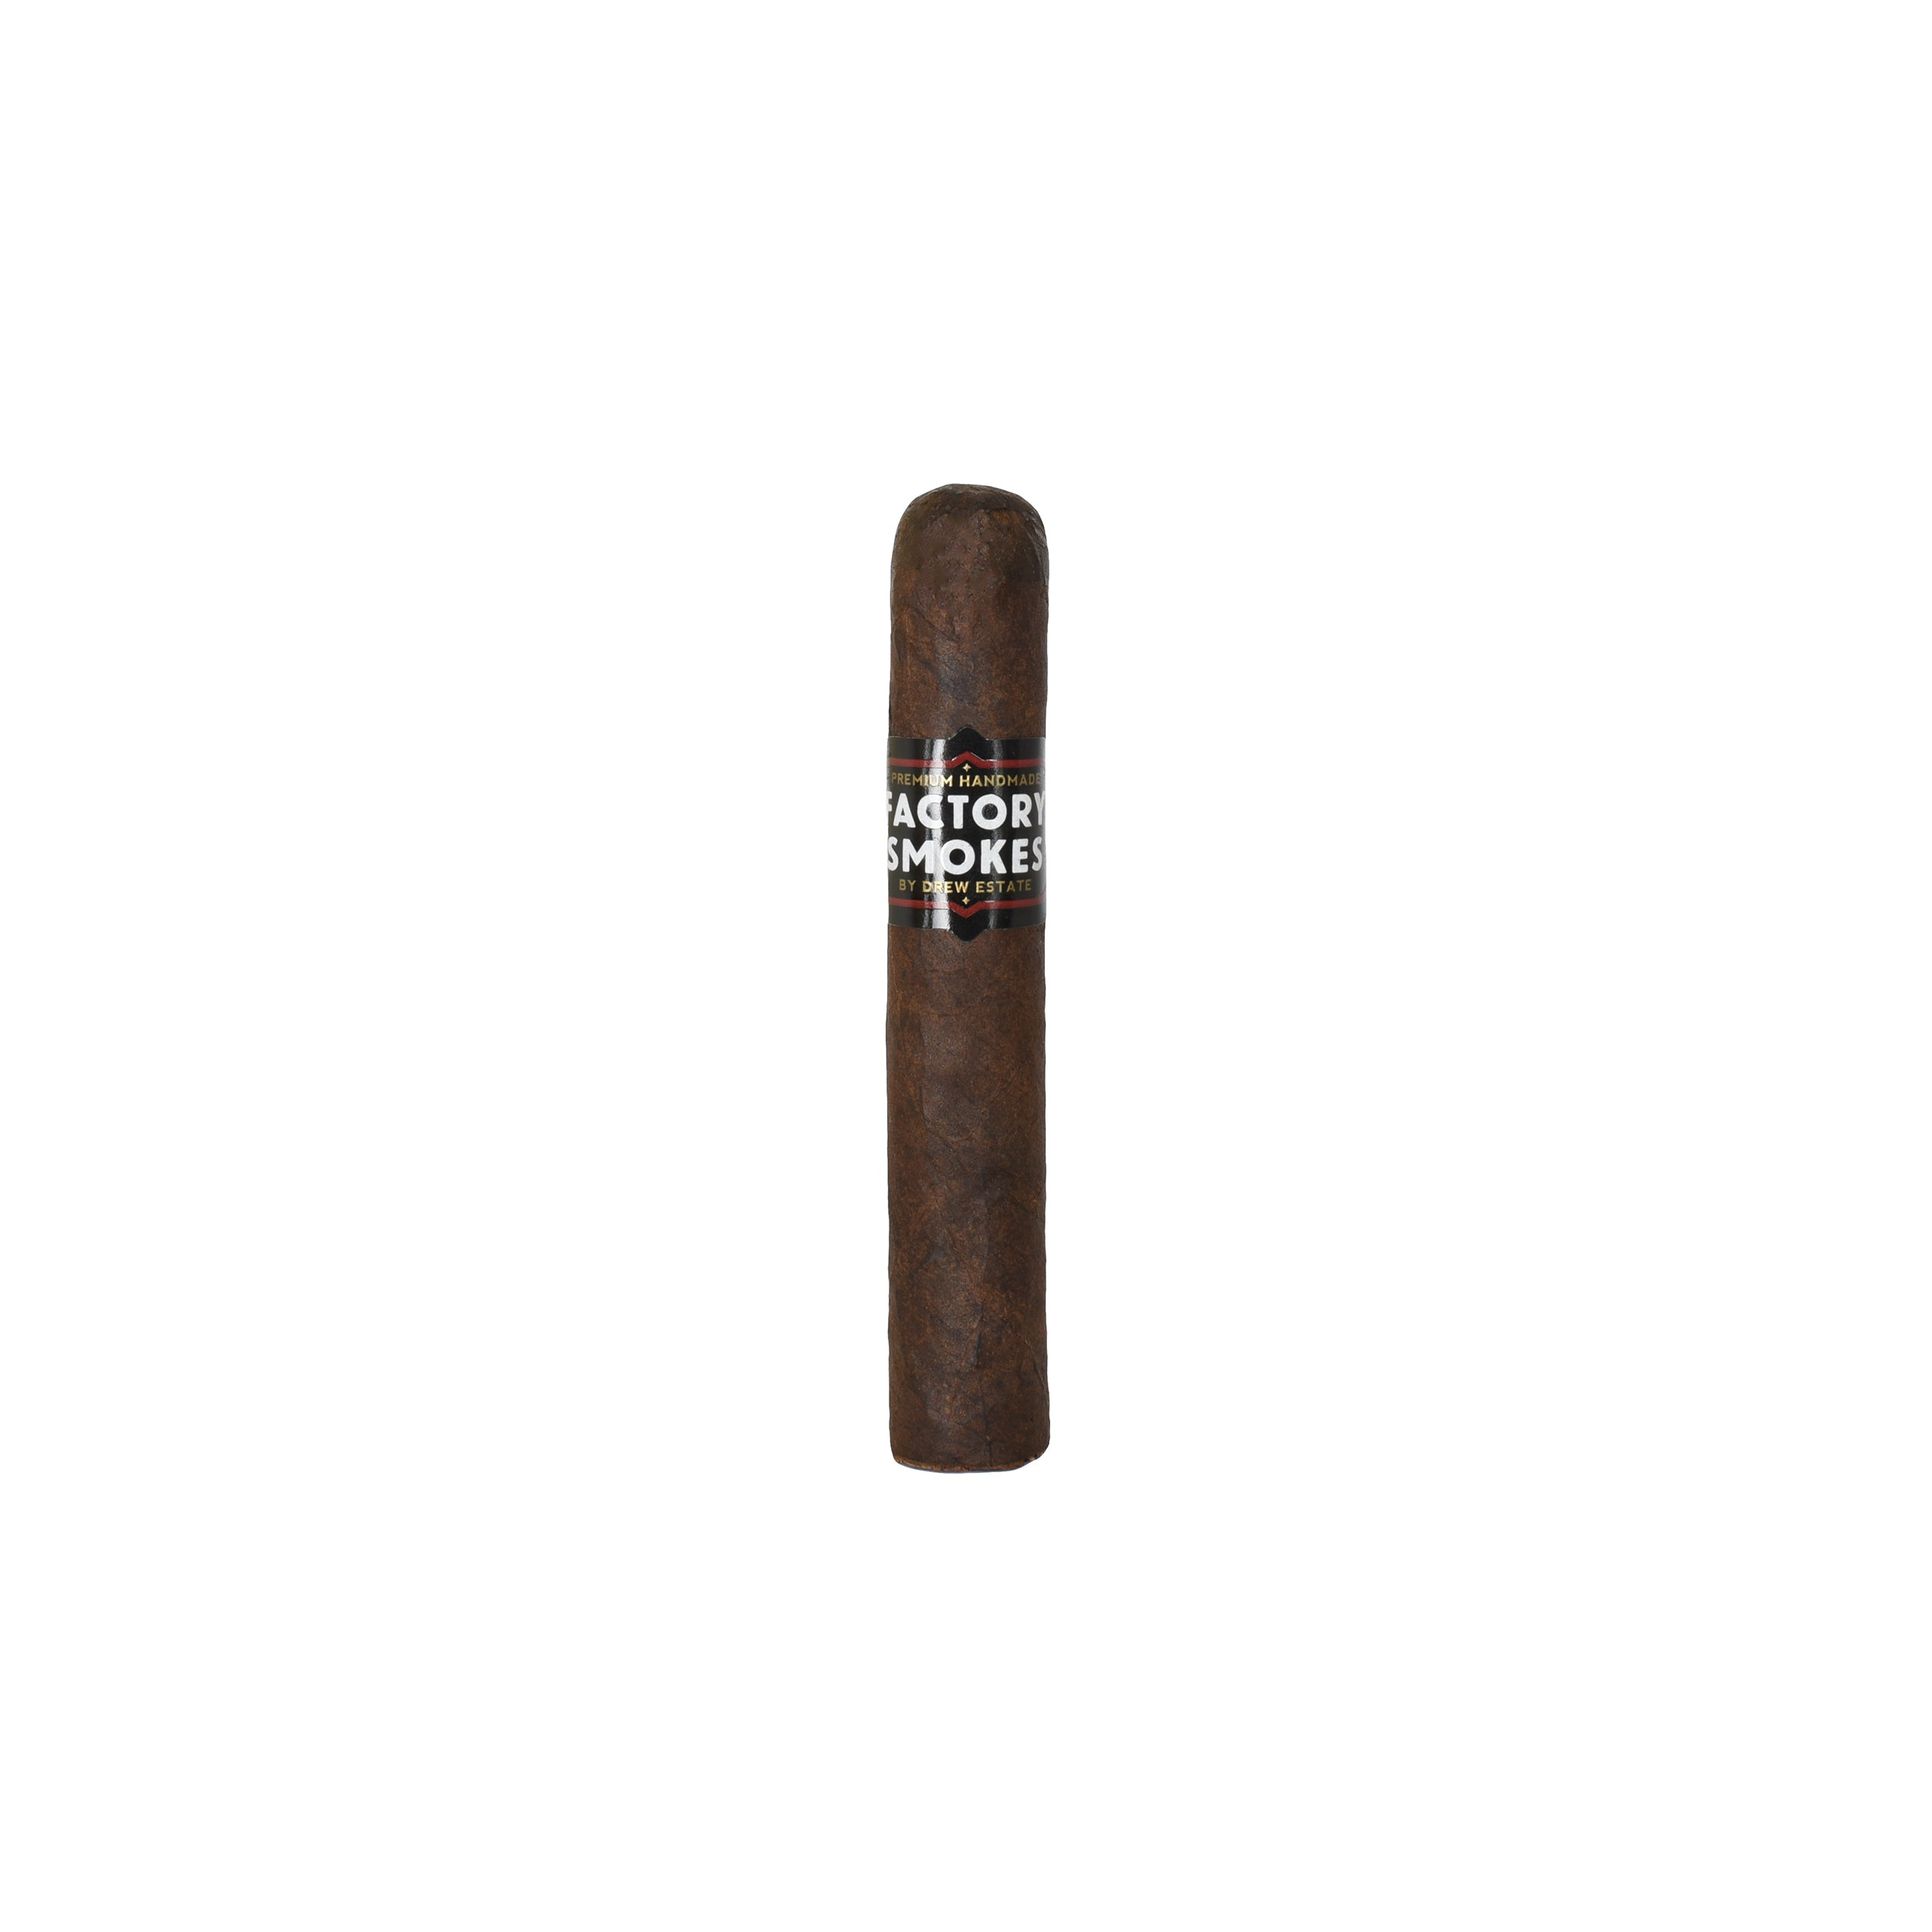 Factory Smokes Maduro Robusto